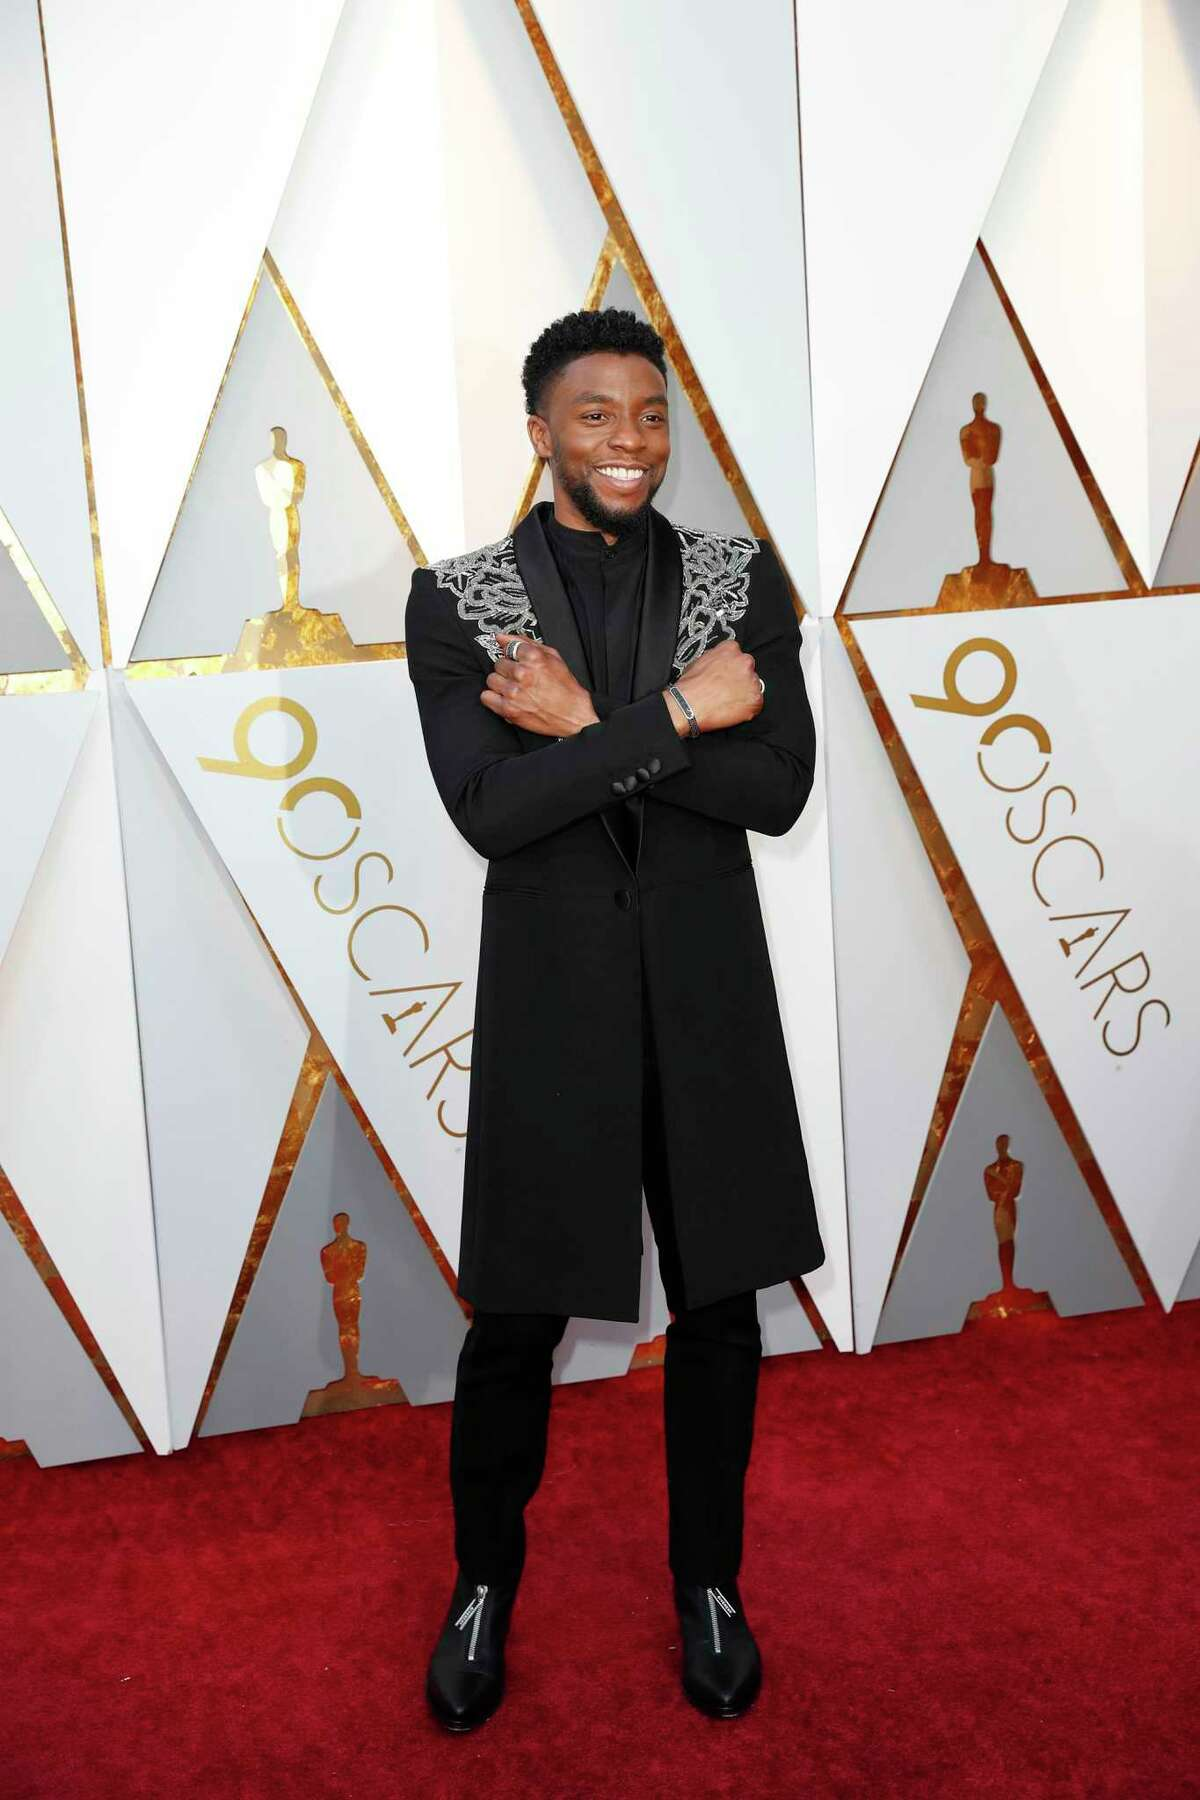 Chadwick Boseman during arrivals at the 90th Academy Awards on March 4, 2018, at the Dolby Theatre at Hollywood & Highland Center in Hollywood. (Jay L. Clendenin/Los Angeles Times/TNS)